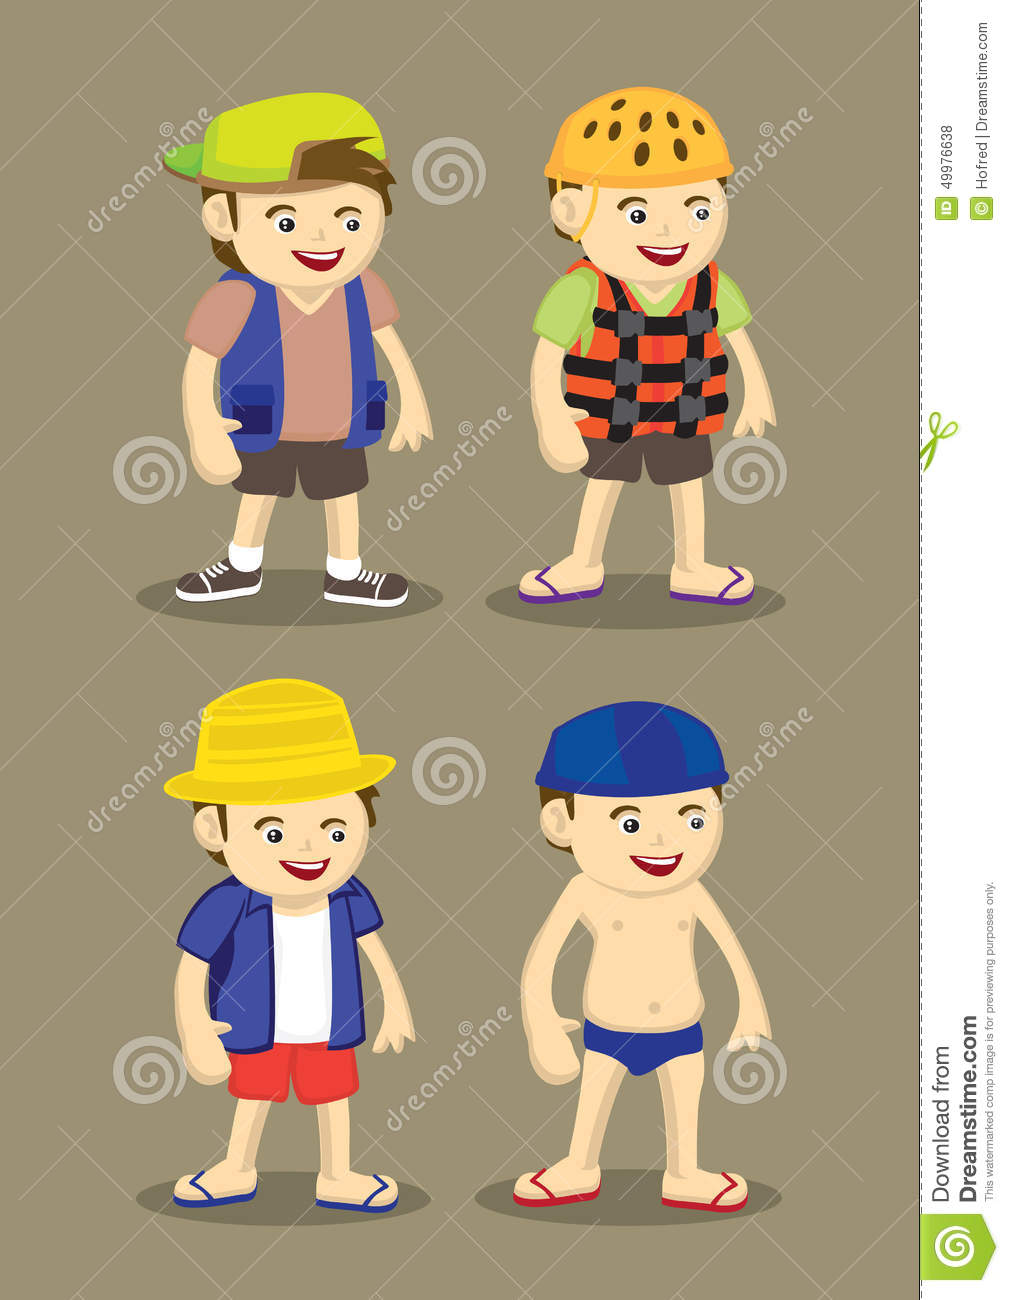 Cartoon Characters Clothes : Men s fashion outfits for summer outdoor adventure